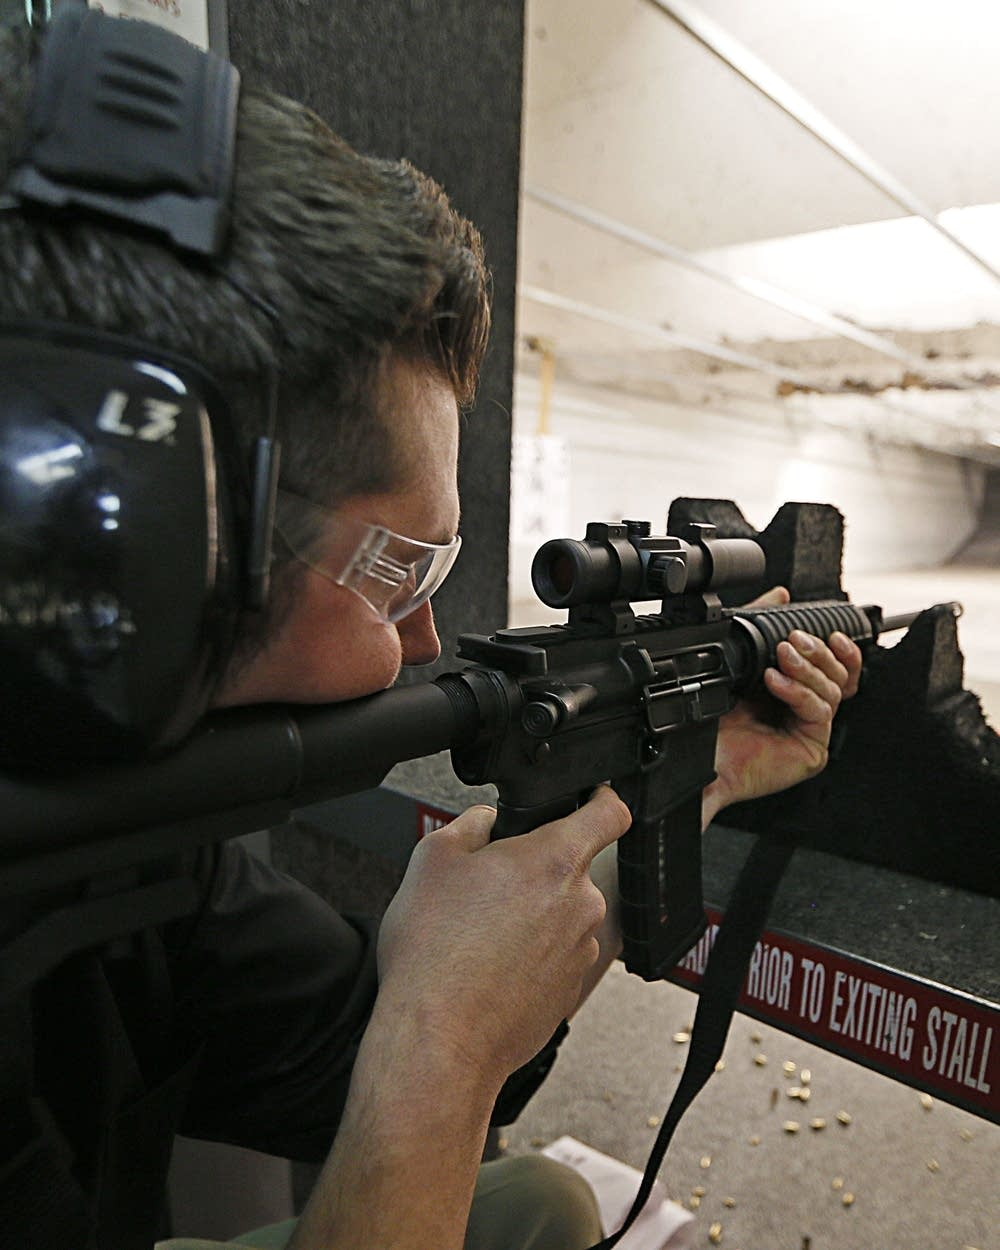 Minnesota gun owners share their views on AR-15s and semi